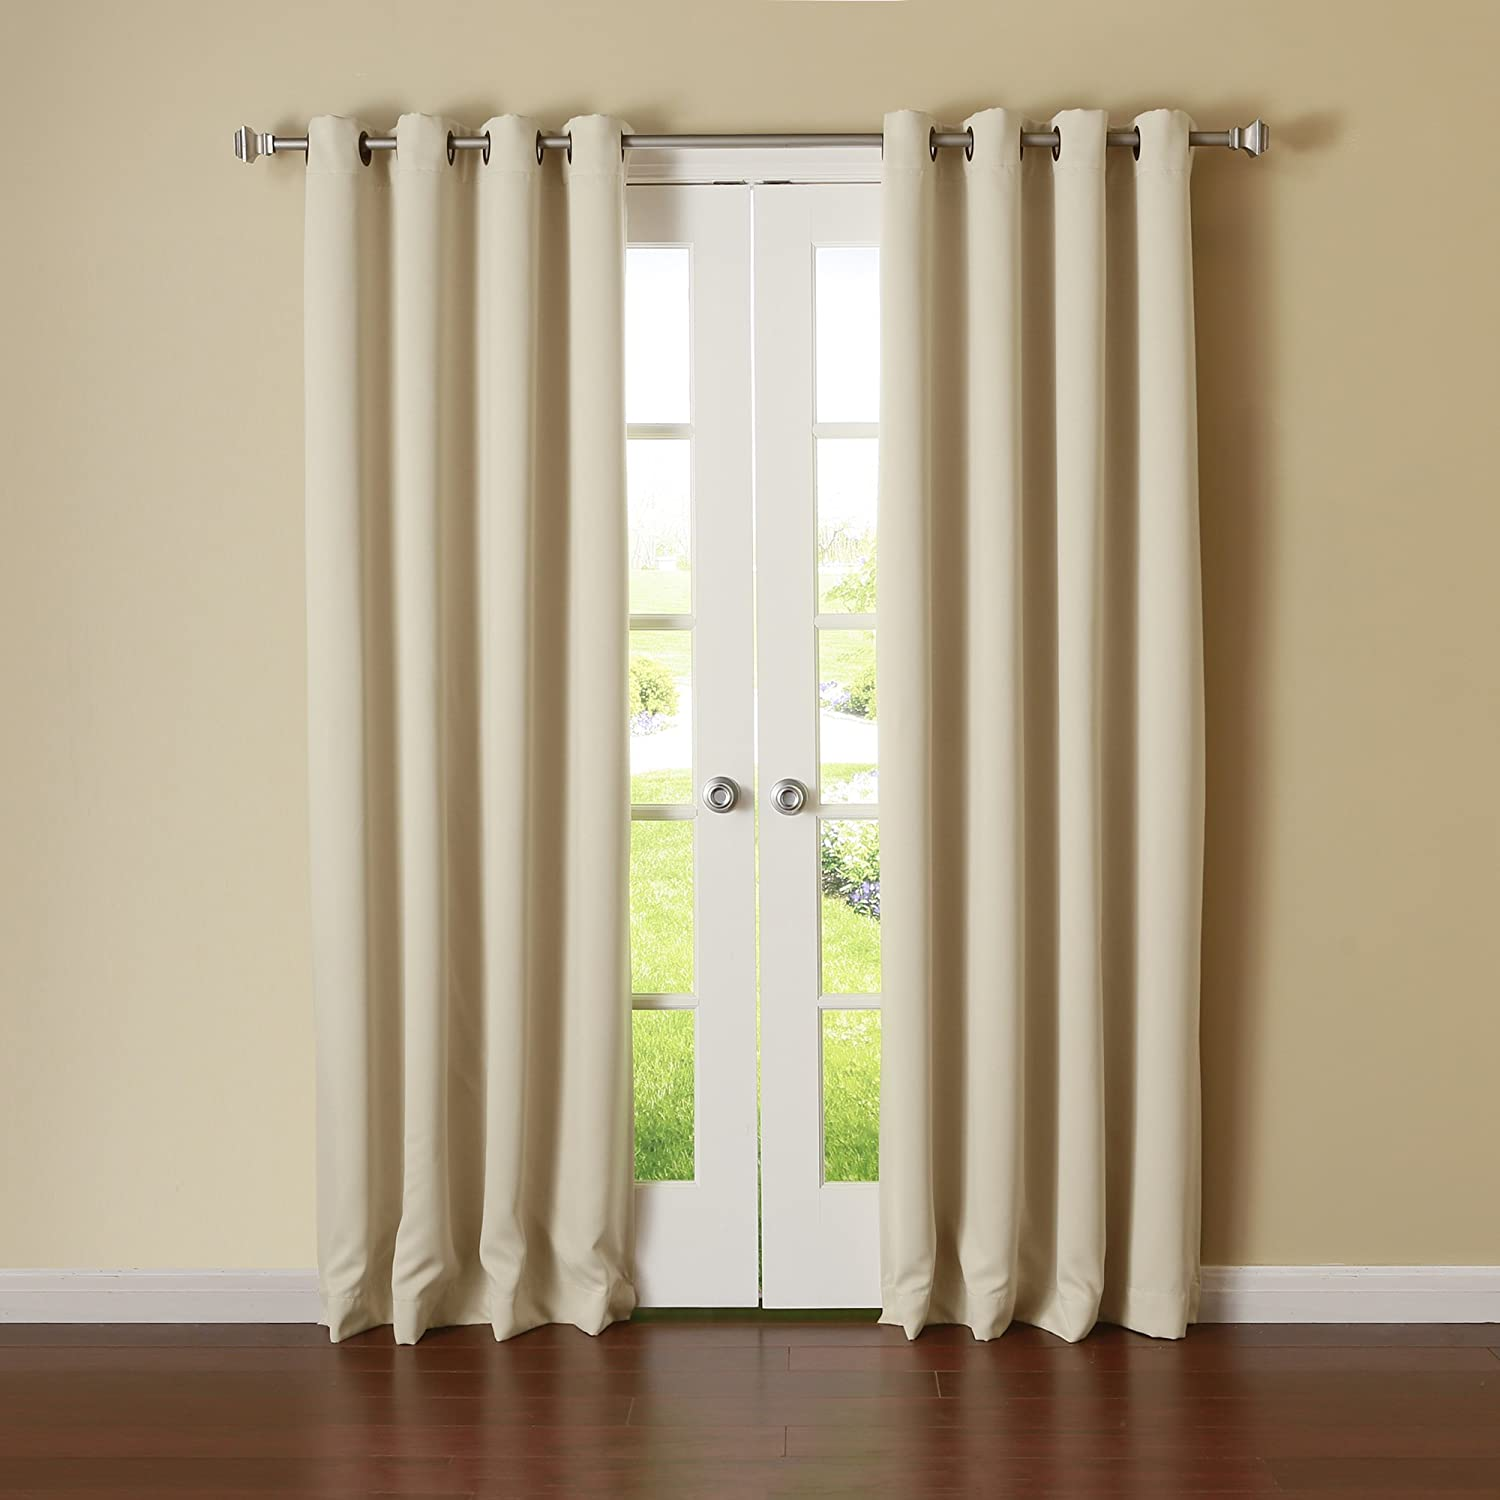 Best Home Fashion Thermal Insulated Blackout Curtains - Antique Bronze Grommet Top - Beige